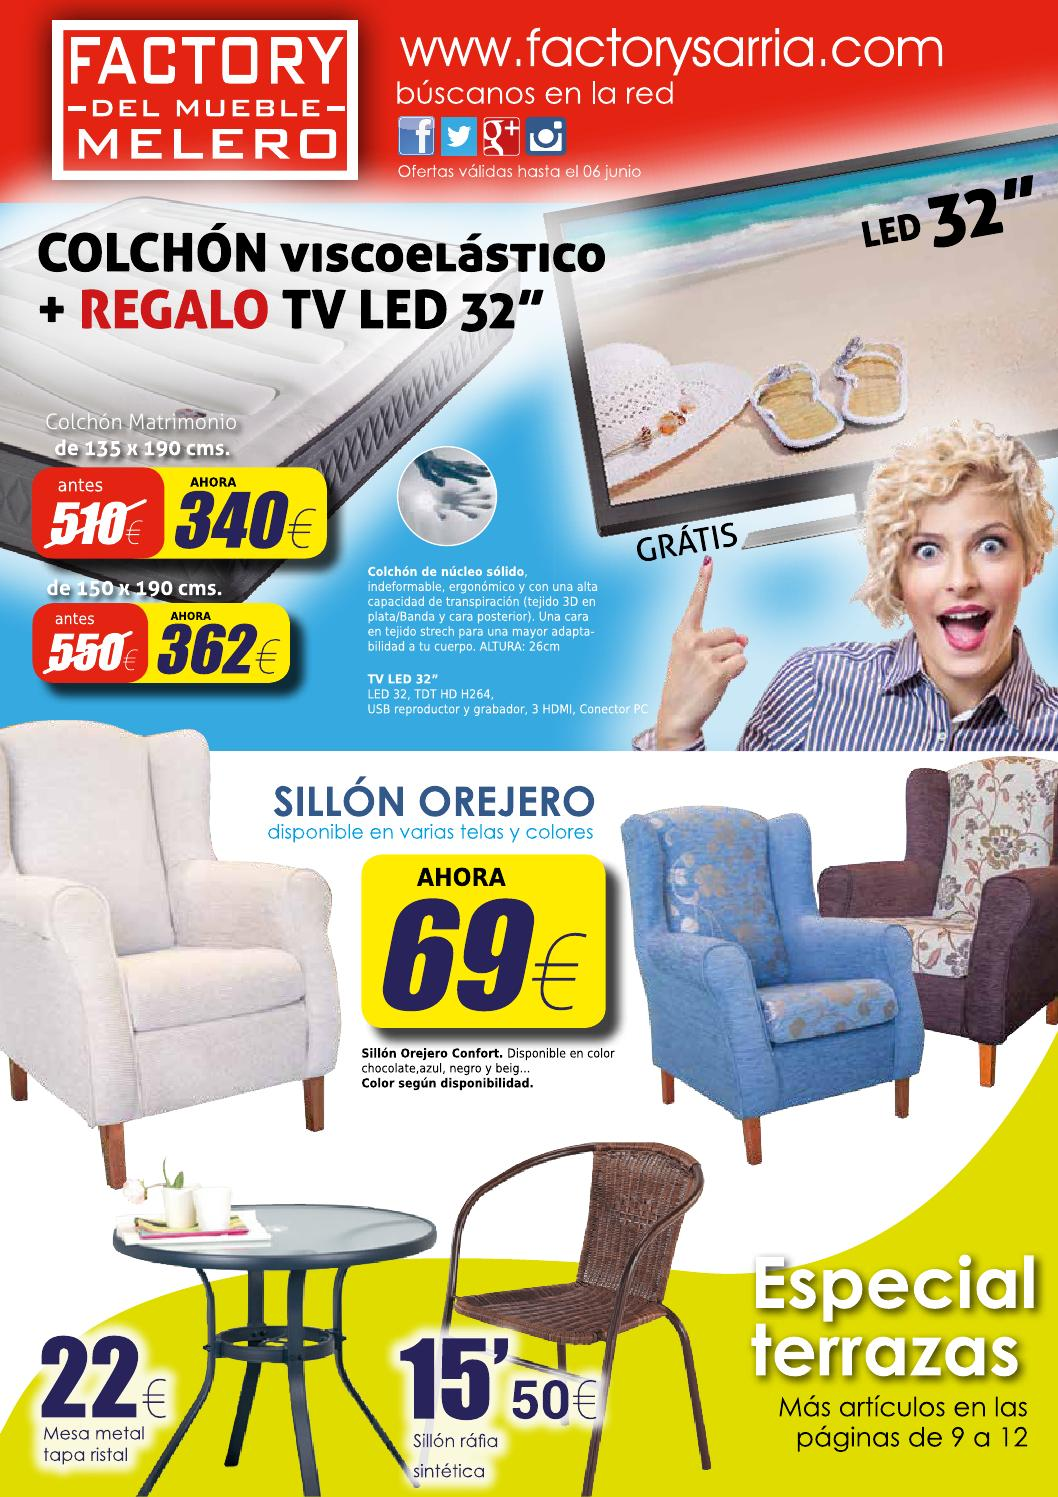 Ofertas factory del mueble melero abril 2015 by factory sarria issuu - Factory del mueble madrid ...